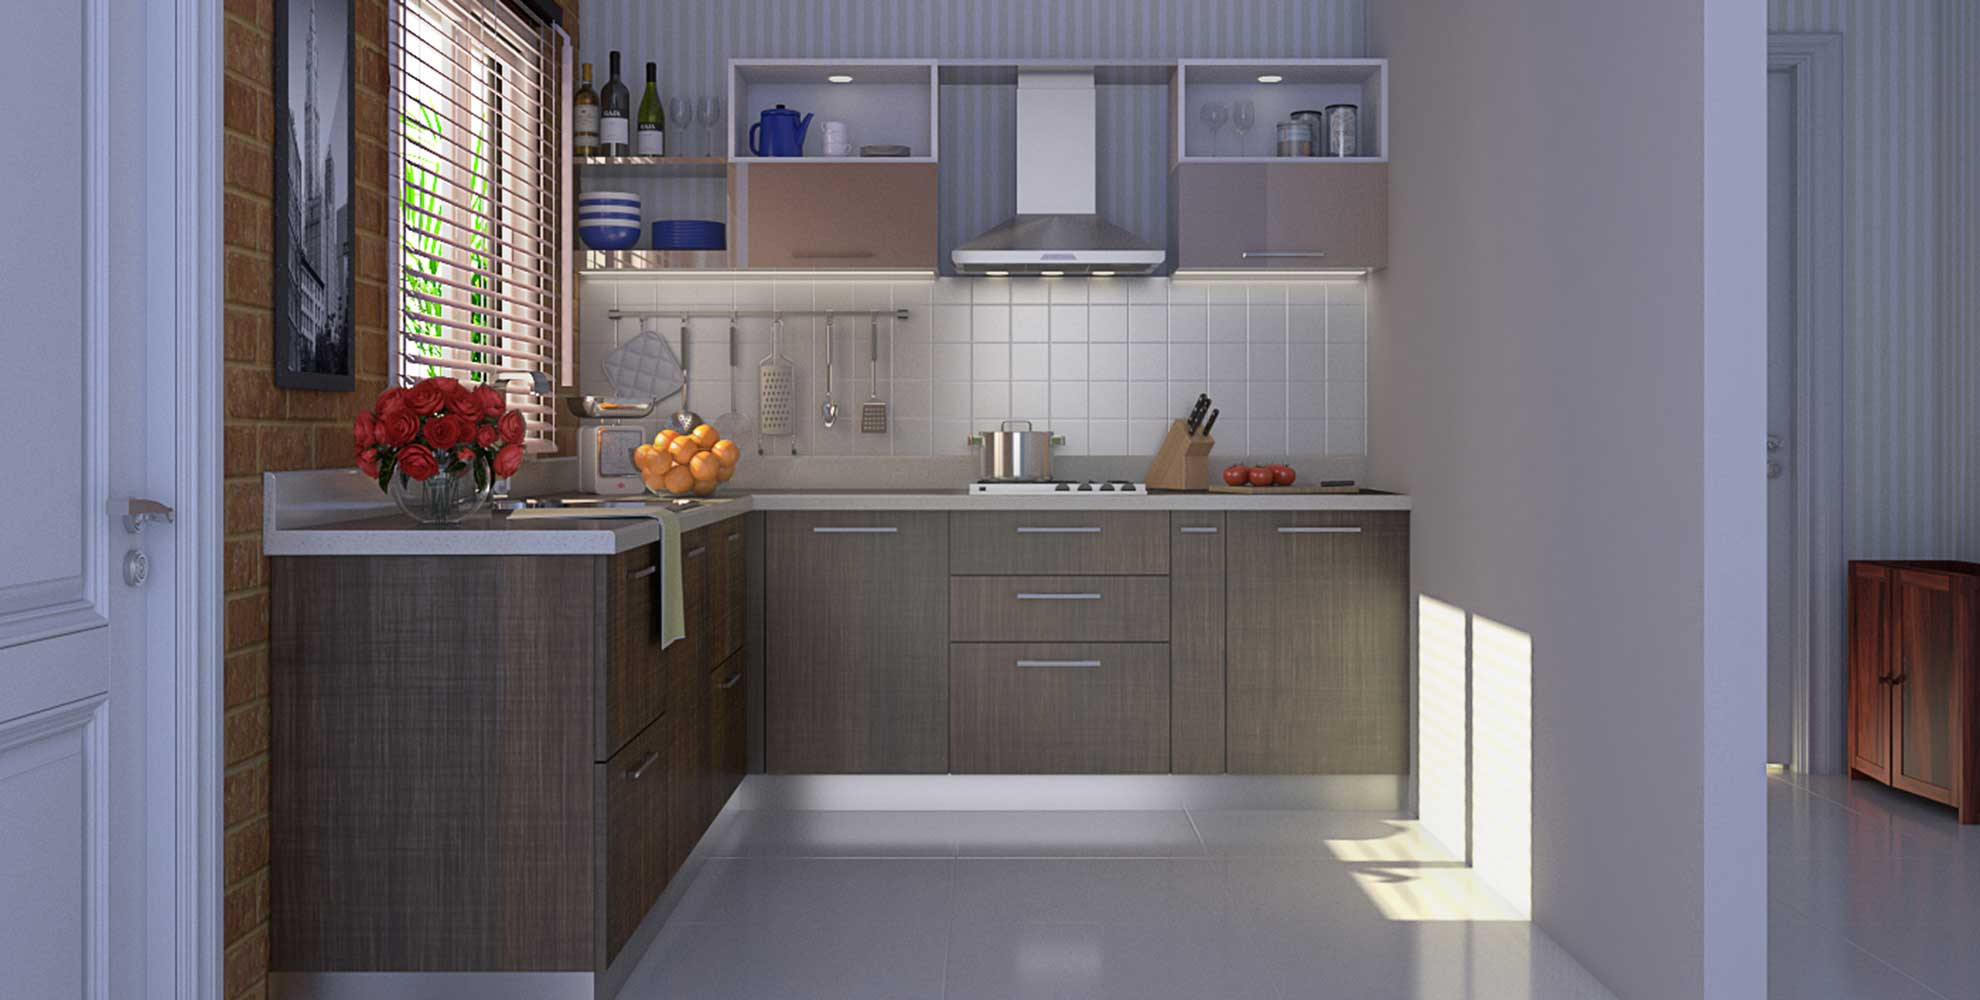 Interior design consultation urban ladder for Looking for kitchen